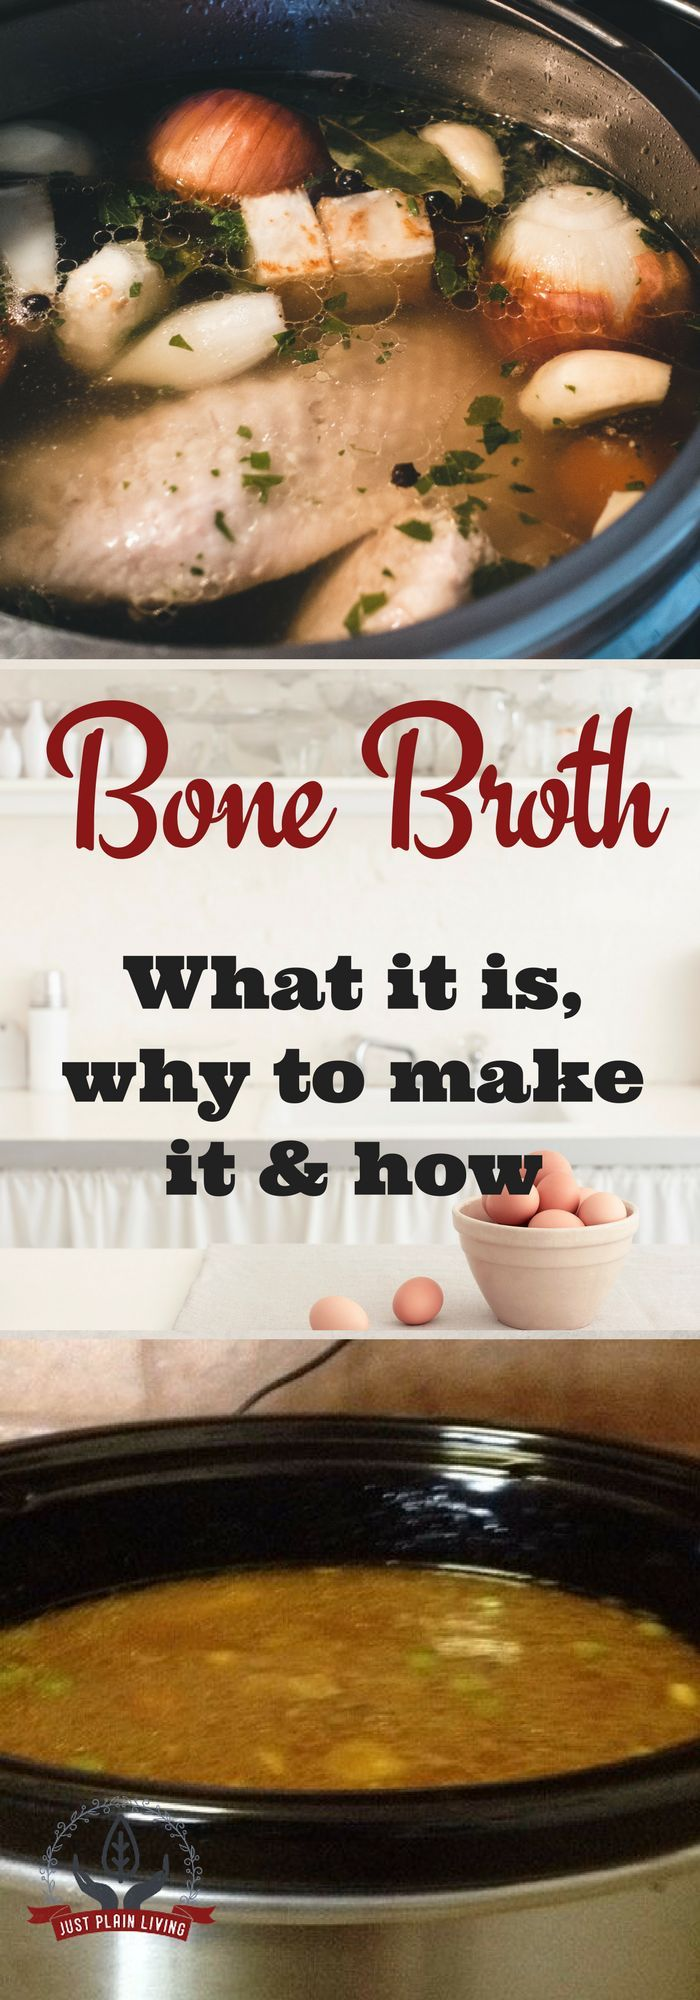 What everyone calls bone broth today is what Grandma called 'broth' - it comes from long, slow simmering of bones in water. The biggest difference between bone broth and regular stock is that bone broth is cooked a lot longer.